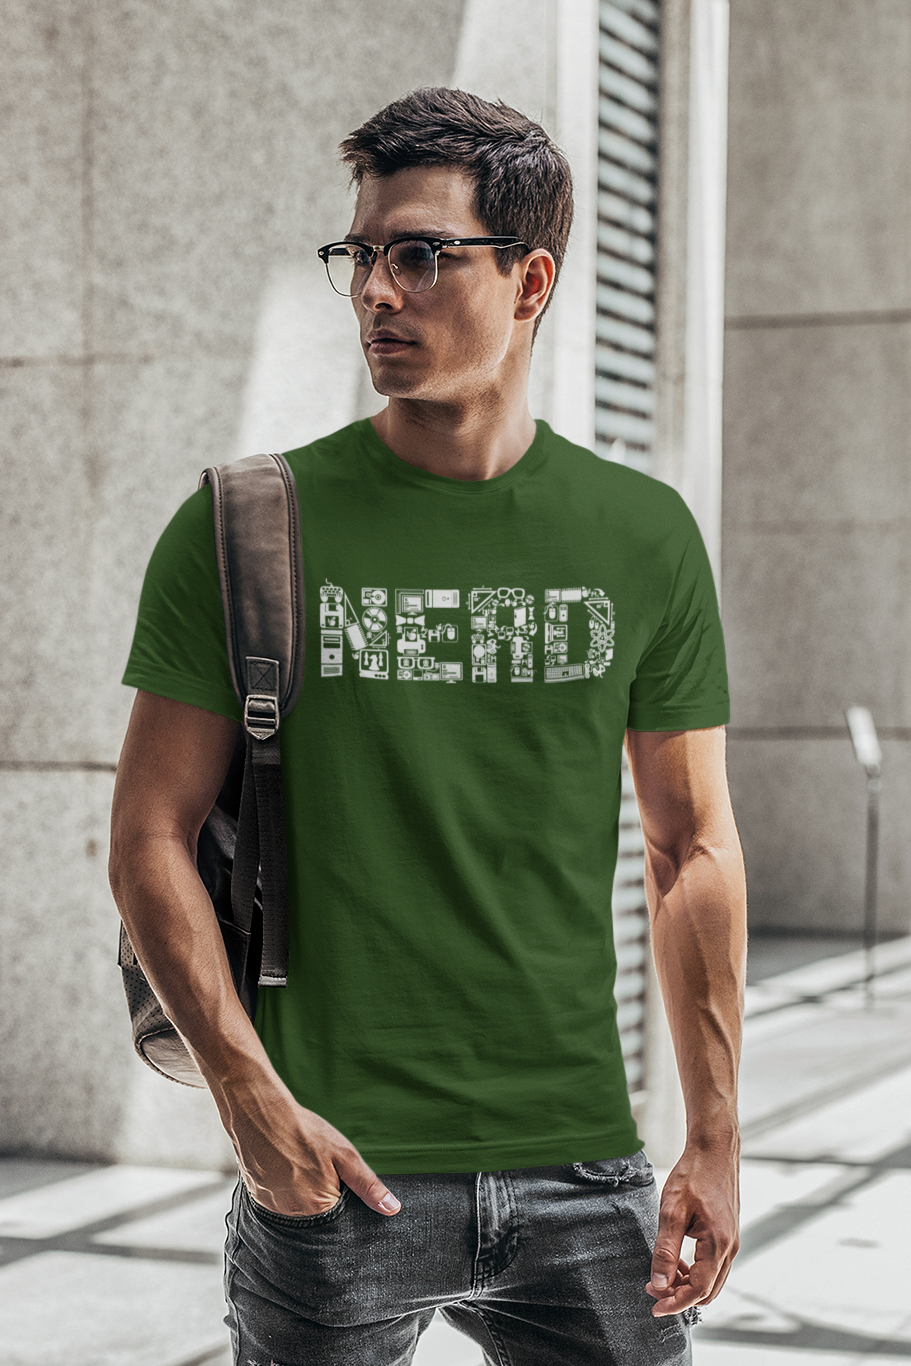 Nerd - Men's Half Sleeve T-Shirt - Green